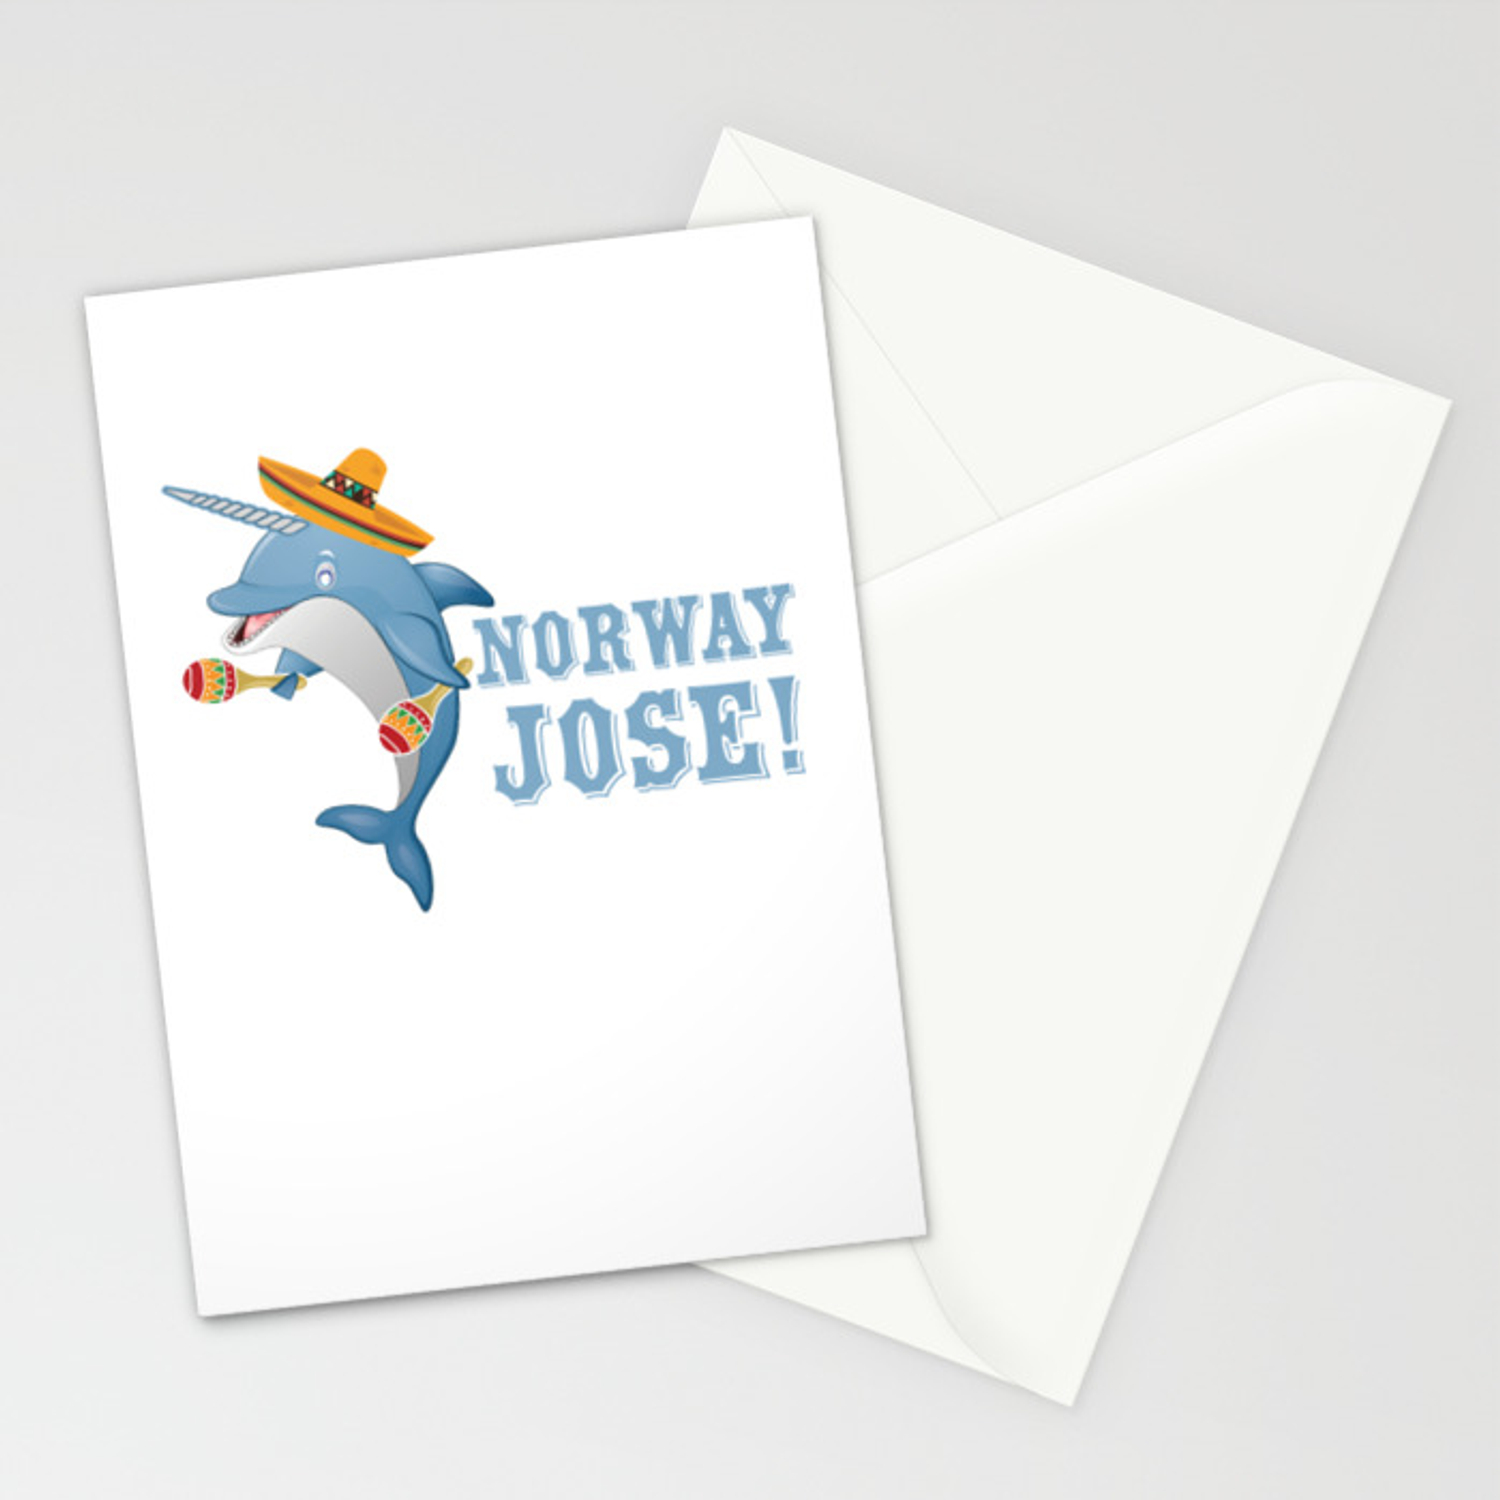 Norway Jose Mexico Mexican Food Tacos Nachos Gift Cinco De Mayo Stationery  Cards by tomgiant